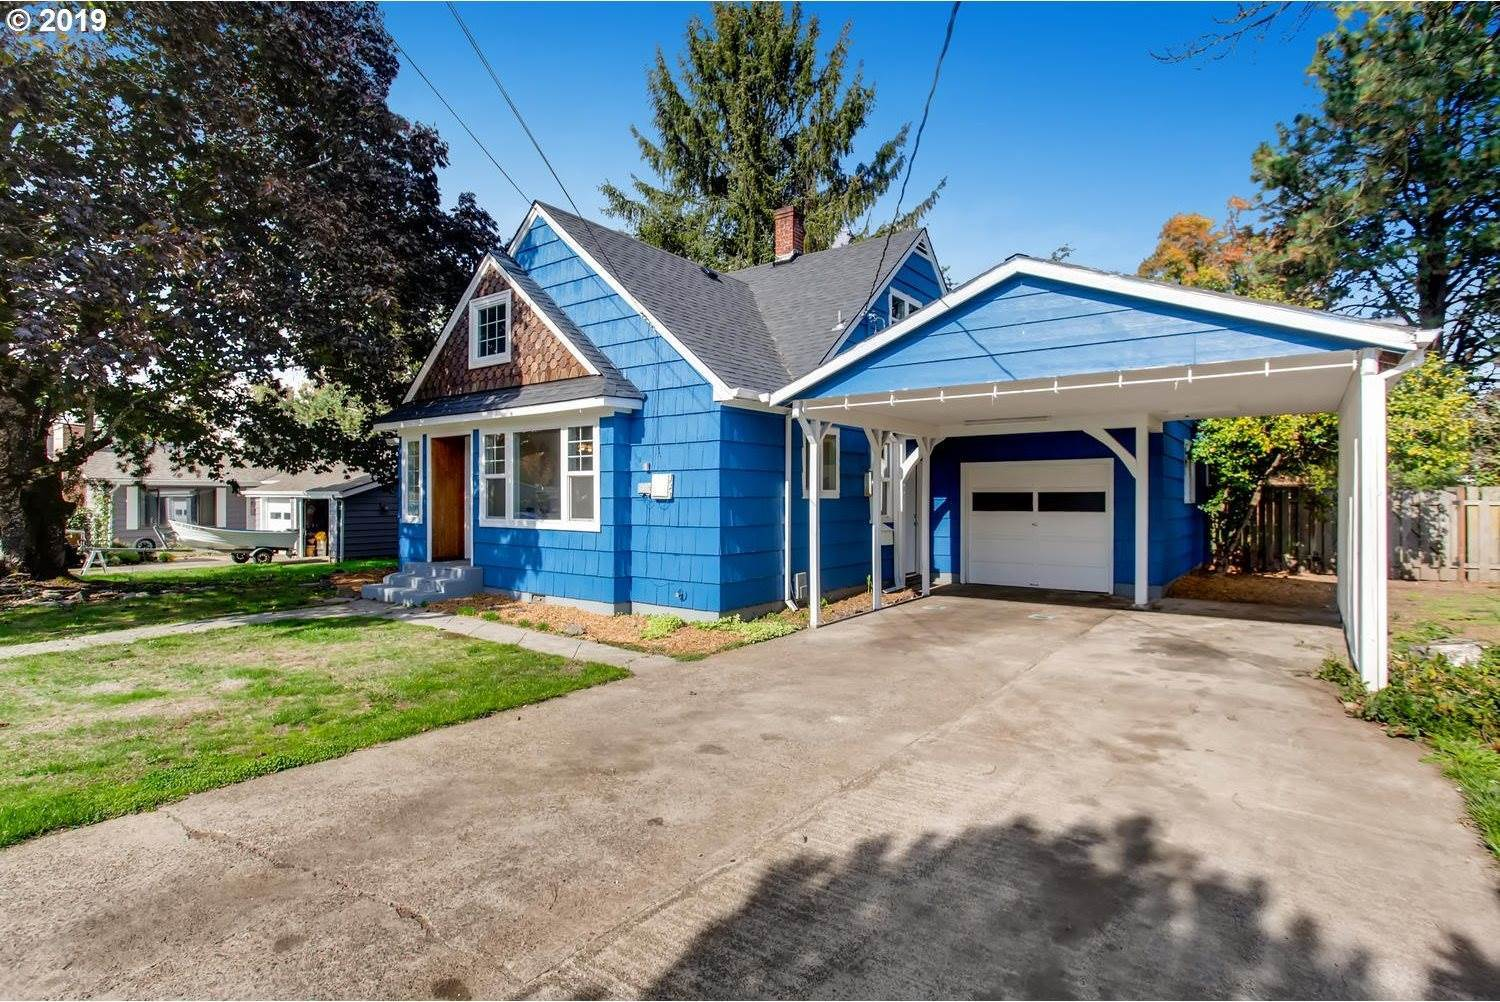 1759 NE 18TH St, McMinnville, OR 97128